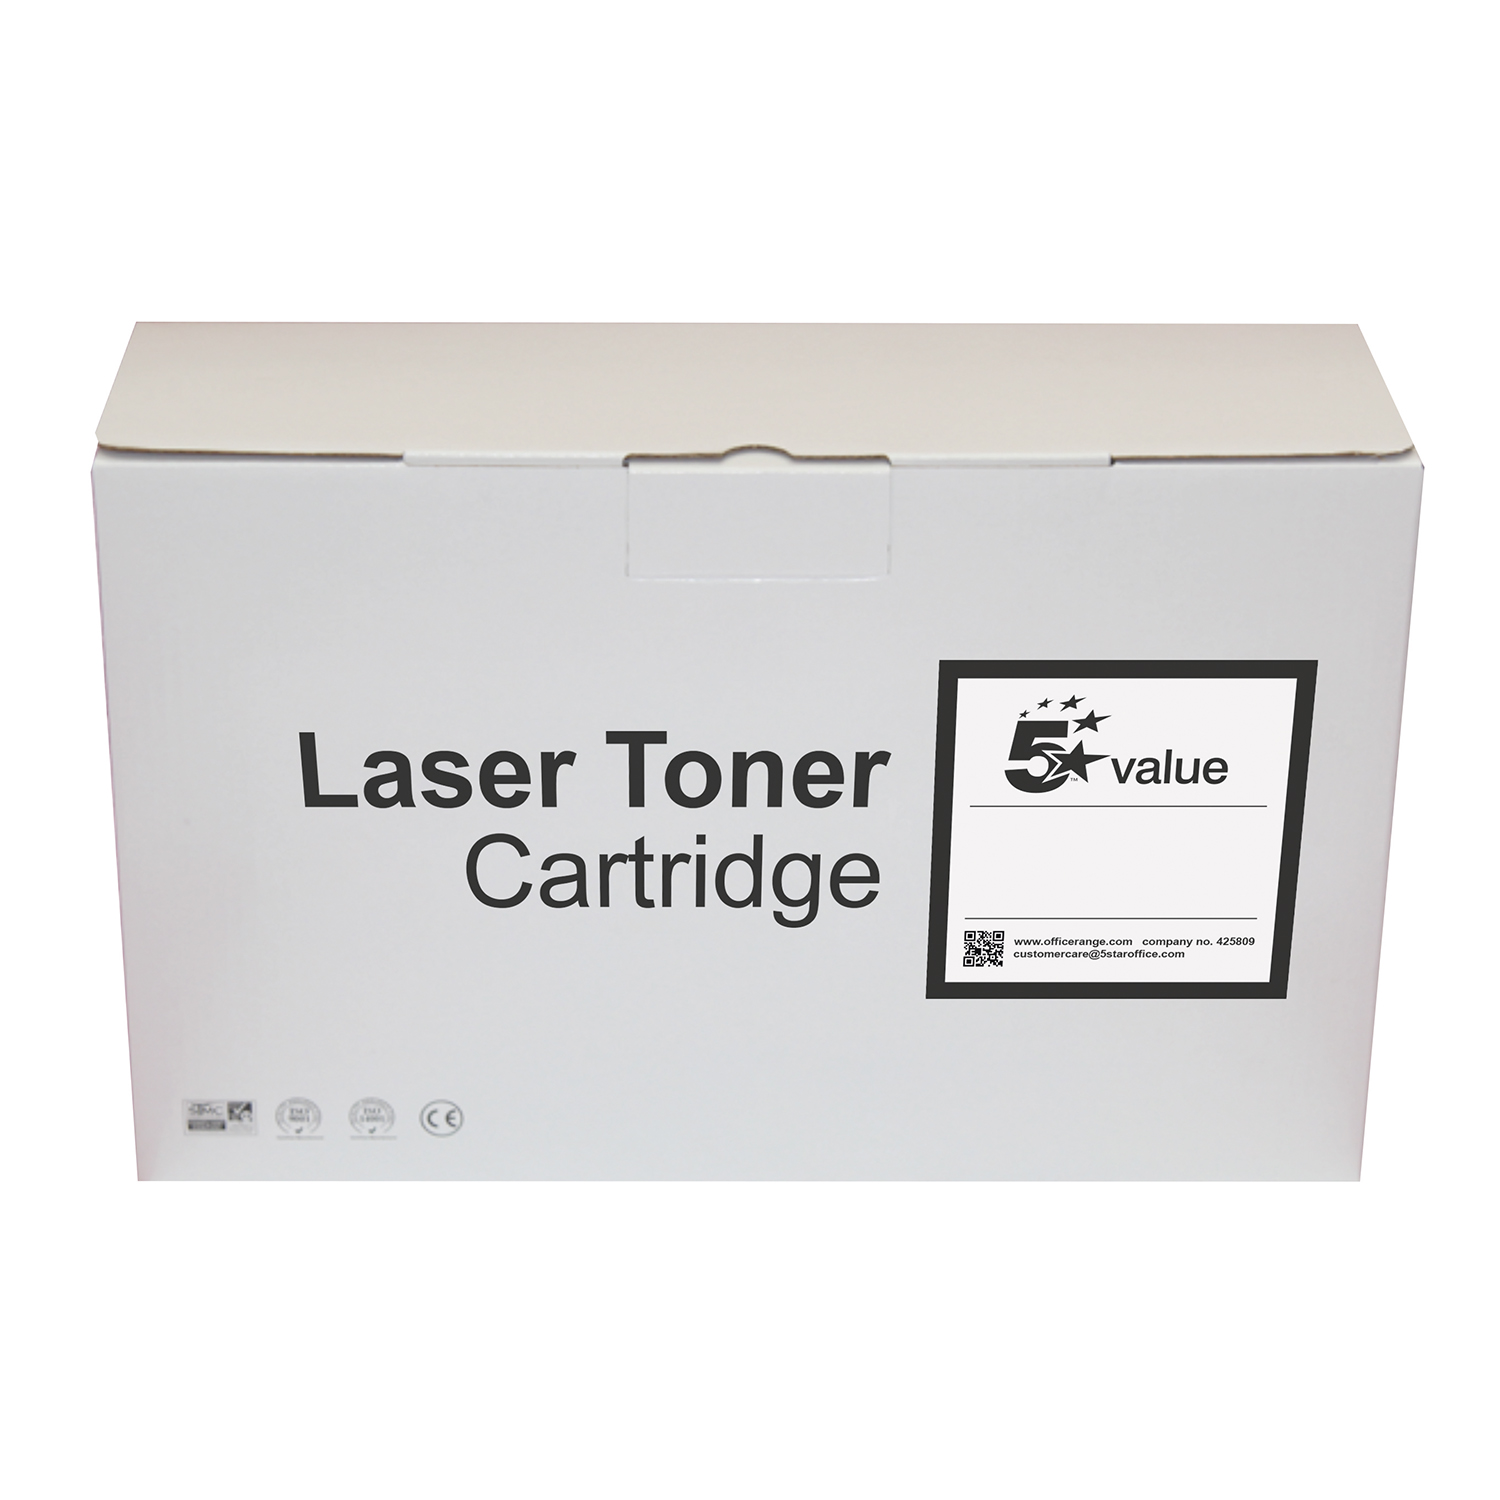 Laser Toner Cartridges 5 Star Value Oki Toner Cartridge Magenta T44973534